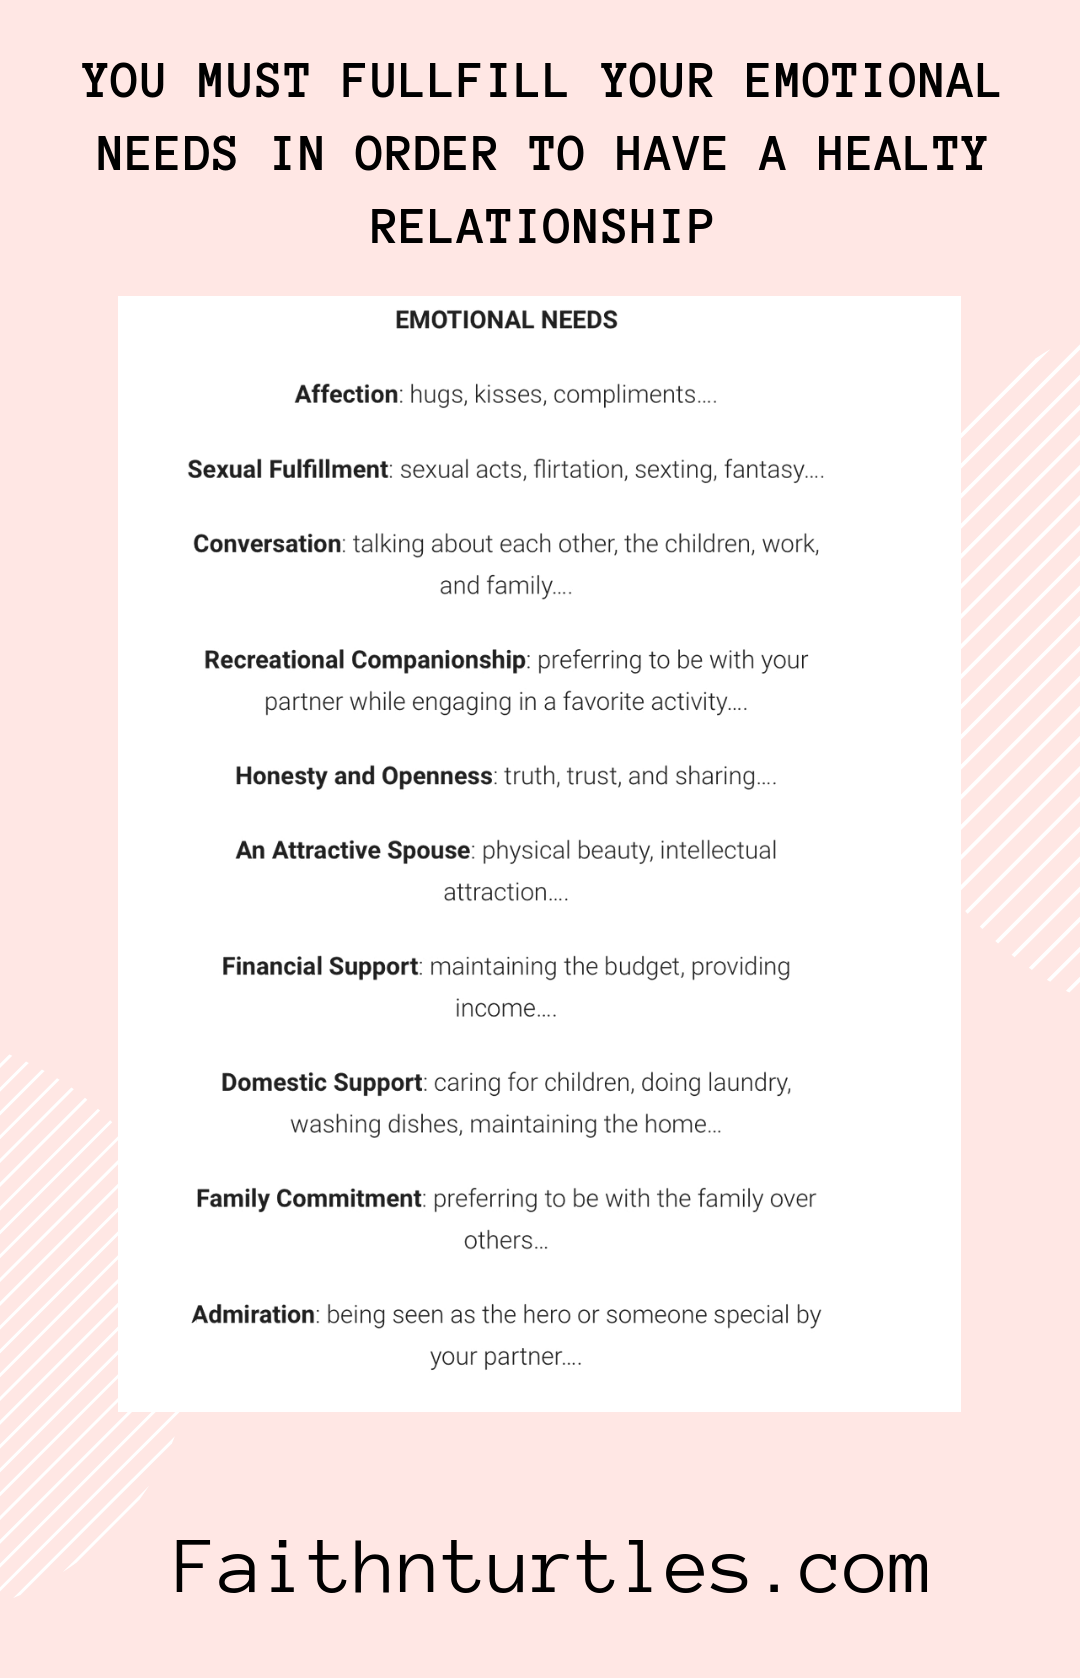 What Are Your Emotional Needs Emotionalneeds